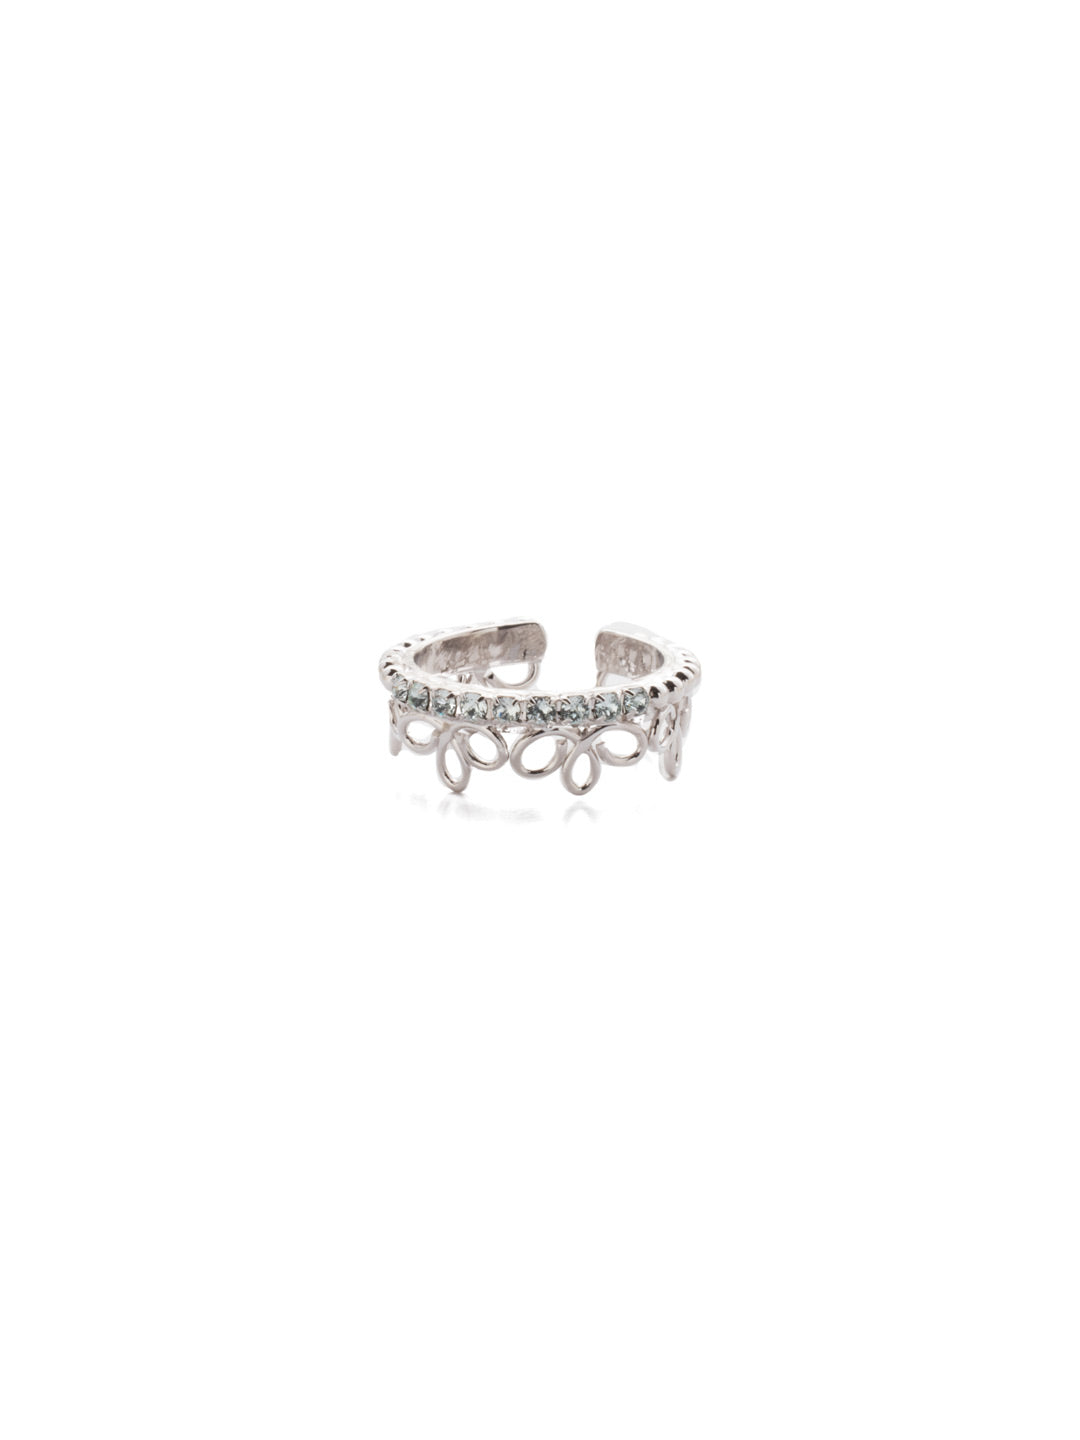 Prunella Band Ring - RES13RHNTB